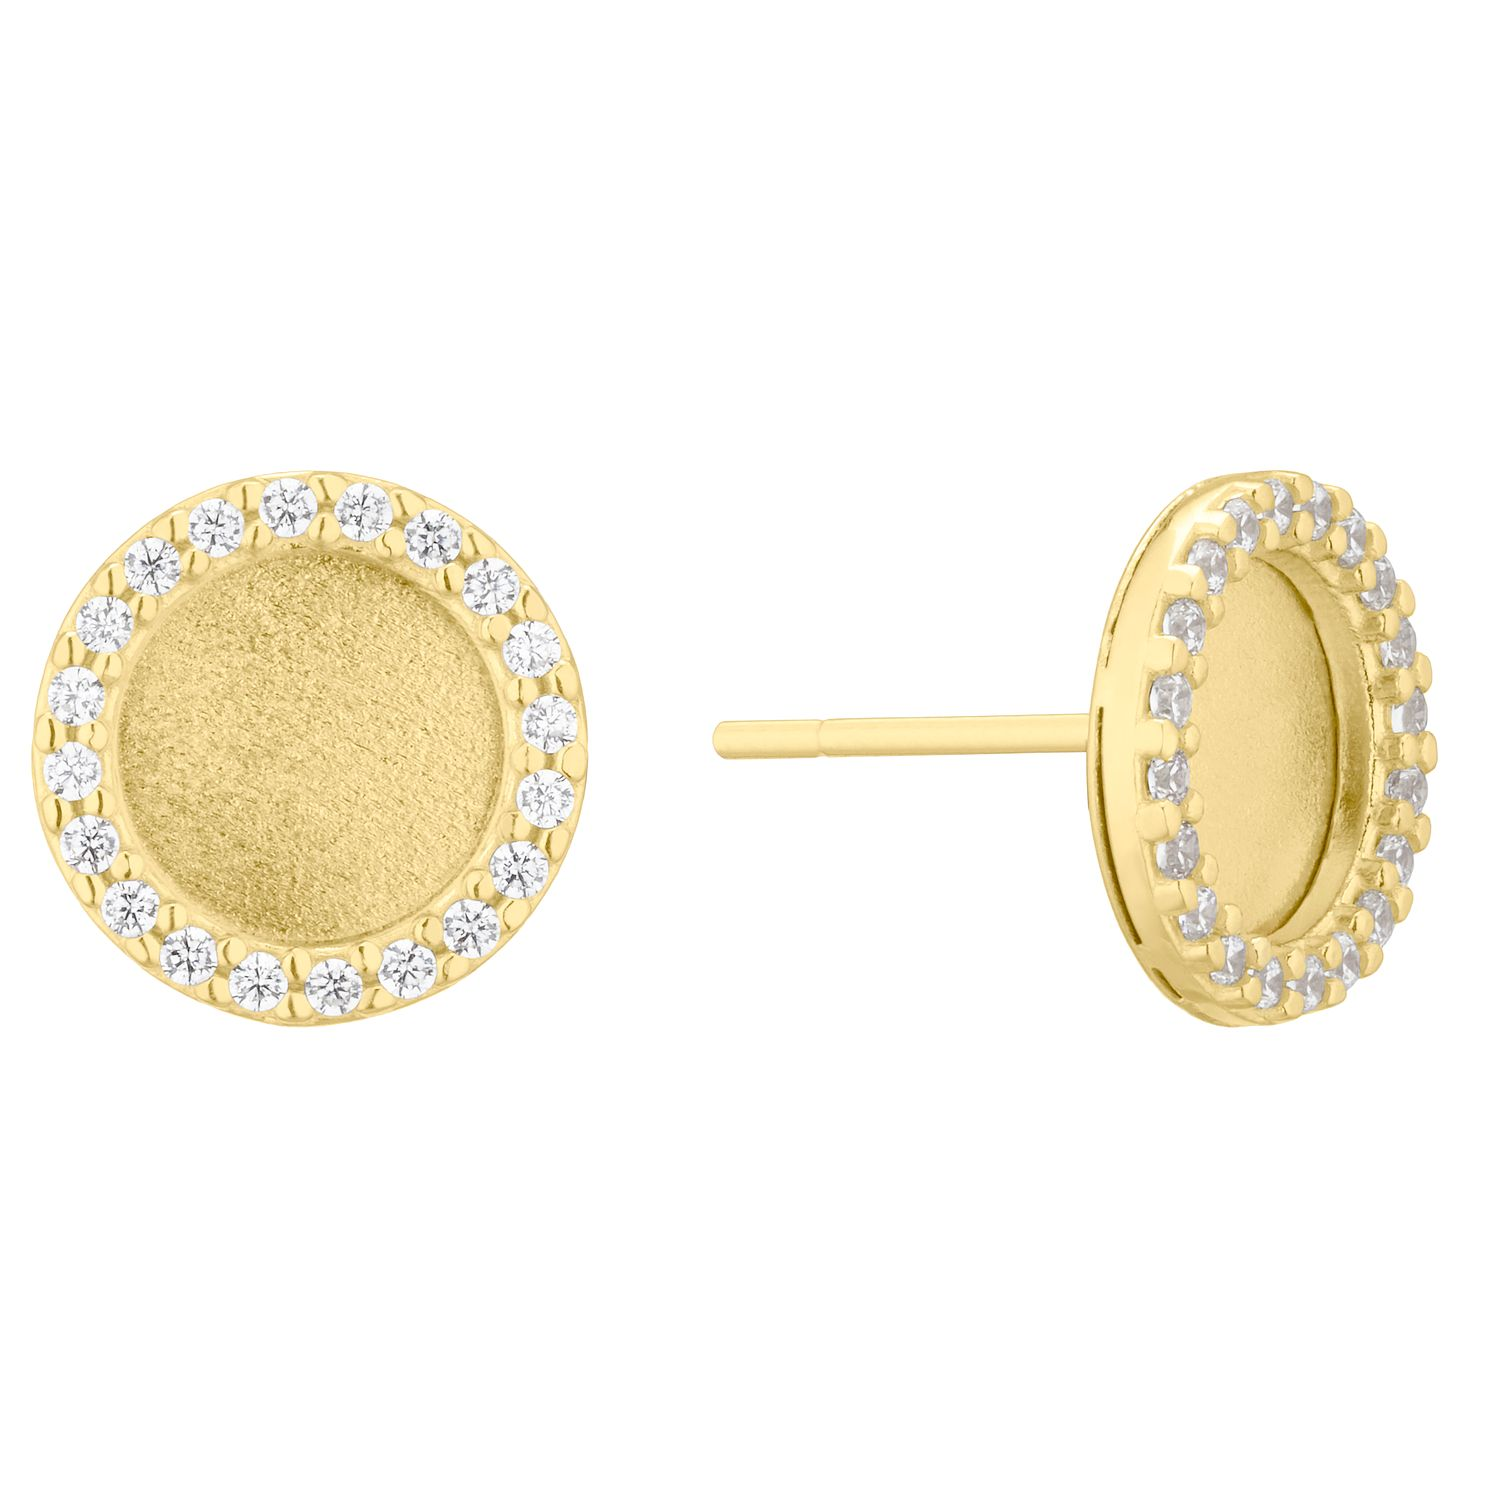 9ct Yellow Gold Cubic Zirconia Round Stud Earrings - Product number 4670027